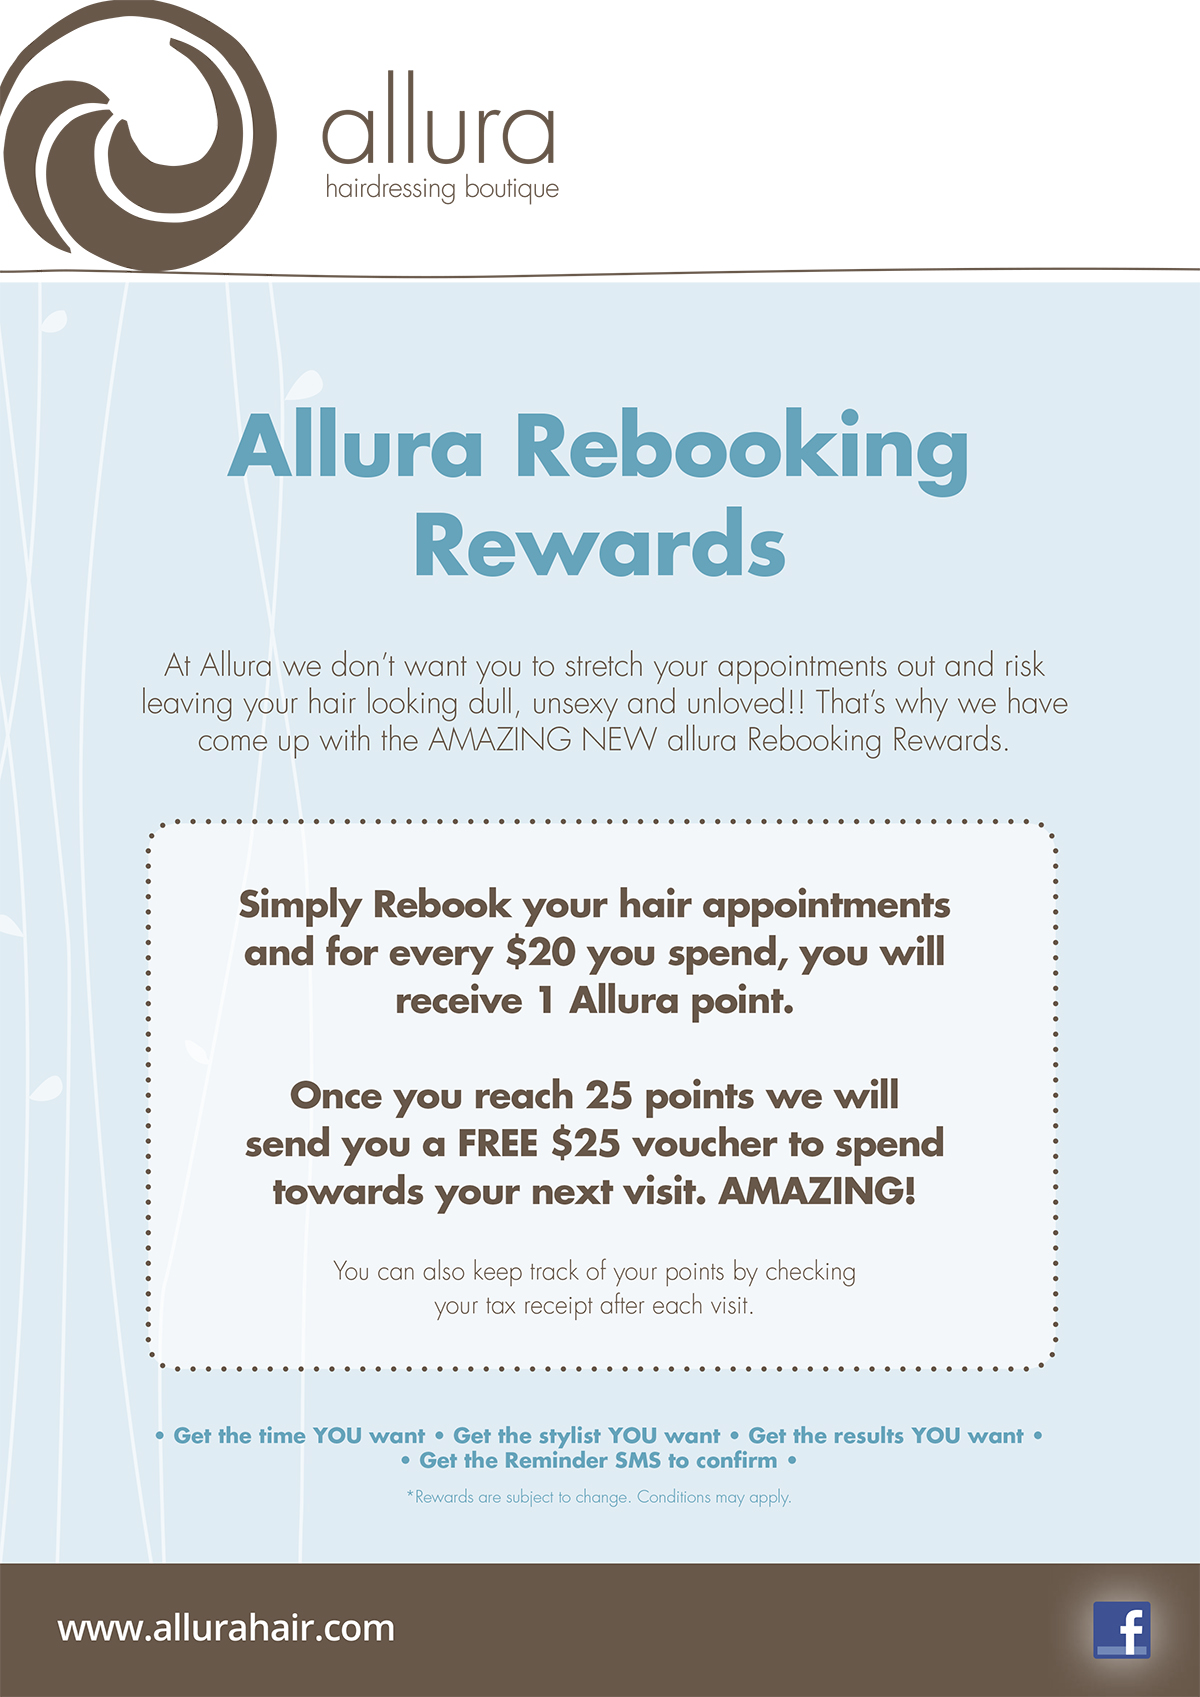 VIP Booking-Allura Hairdressing Boutique